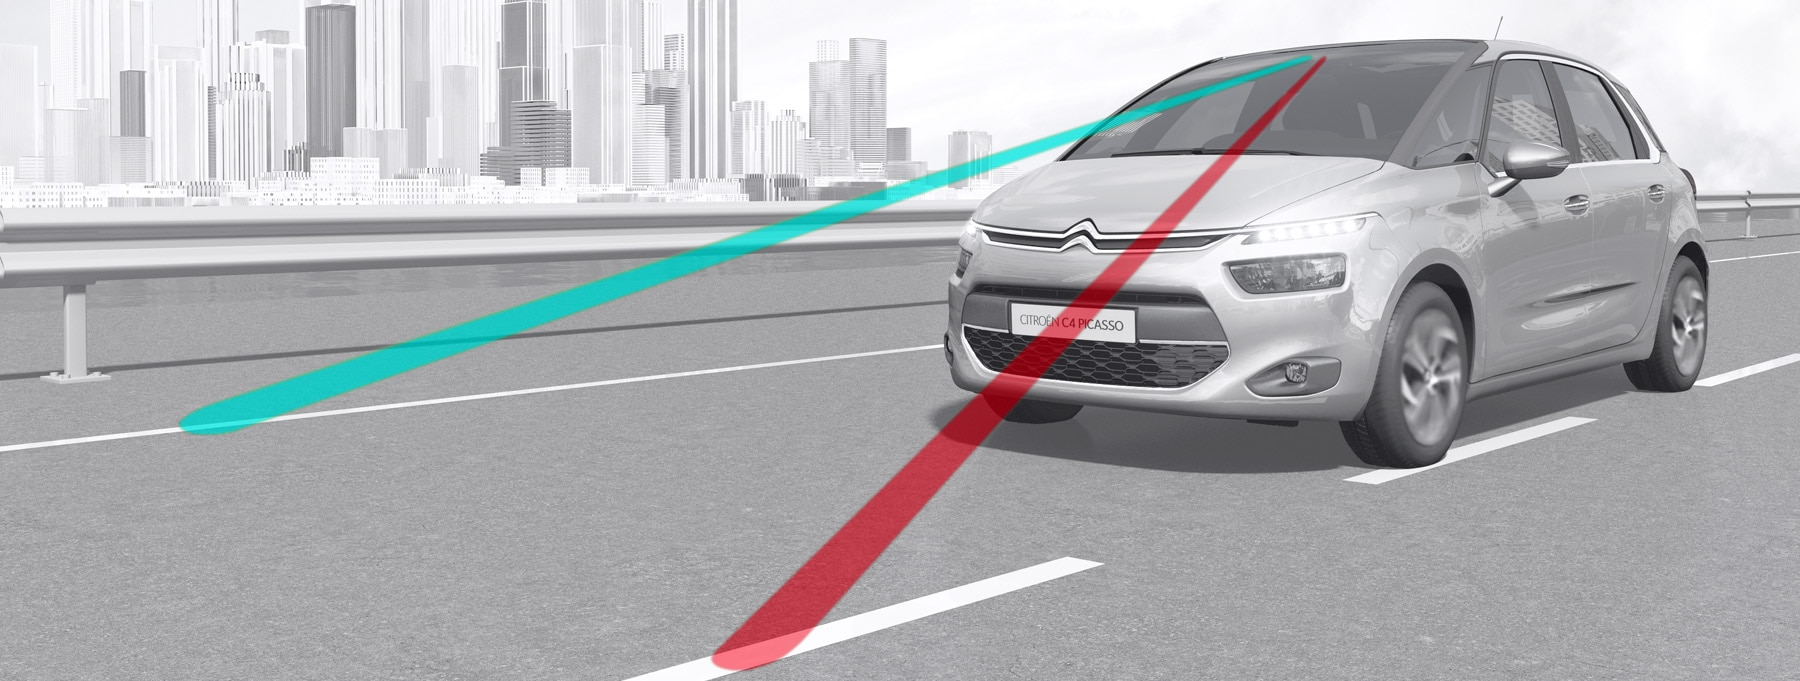 Safety - Video lane departure warning system